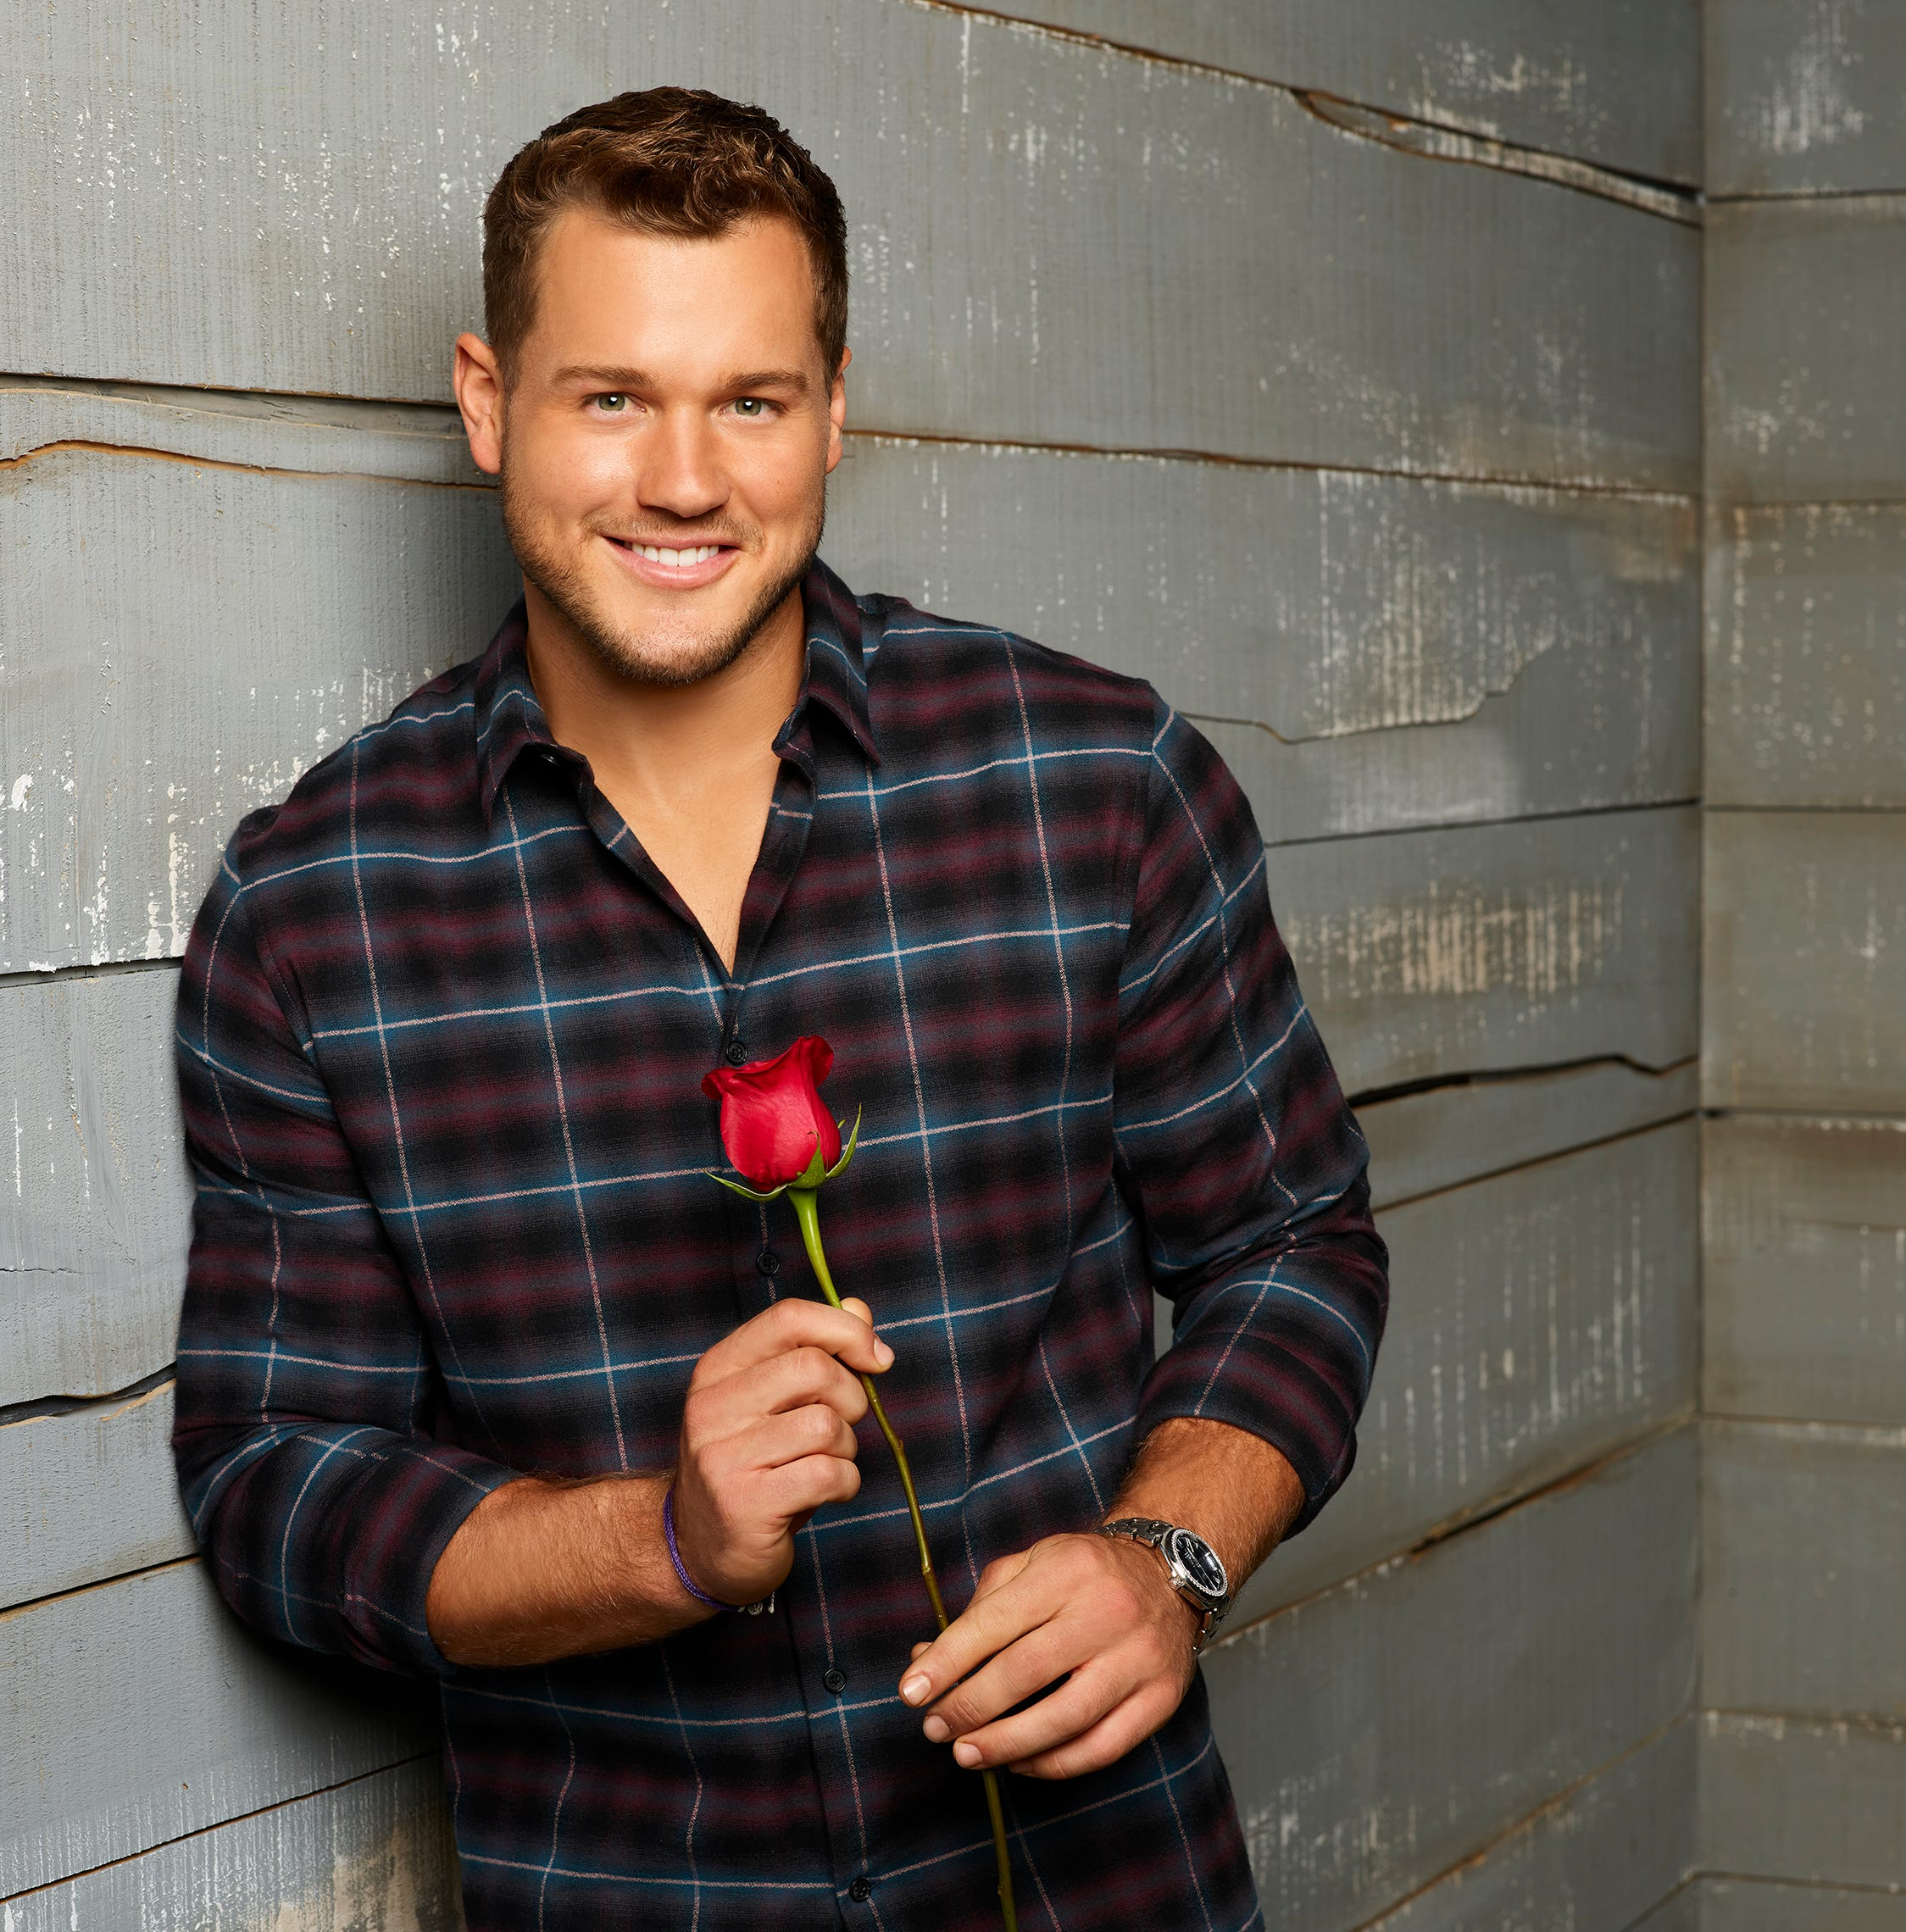 "THE BACHELOR - Colton Underwood burst onto the scene during Season 14 of ""The Bachelorette."" It was his good looks, love for dogs and vulnerability that charmed not only Bachelorette Becca Kufrin, but all of Bachelor Nation. This former NFL player made a play for Becca's heart but was sadly sent home after professing he had fallen in love. Now Colton is back and ready to capture hearts across America yet again when he returns for another shot at love, starring in the 23rd season of ABC's hit romance reality series ""The Bachelor,"" when it premieres in January 2019."